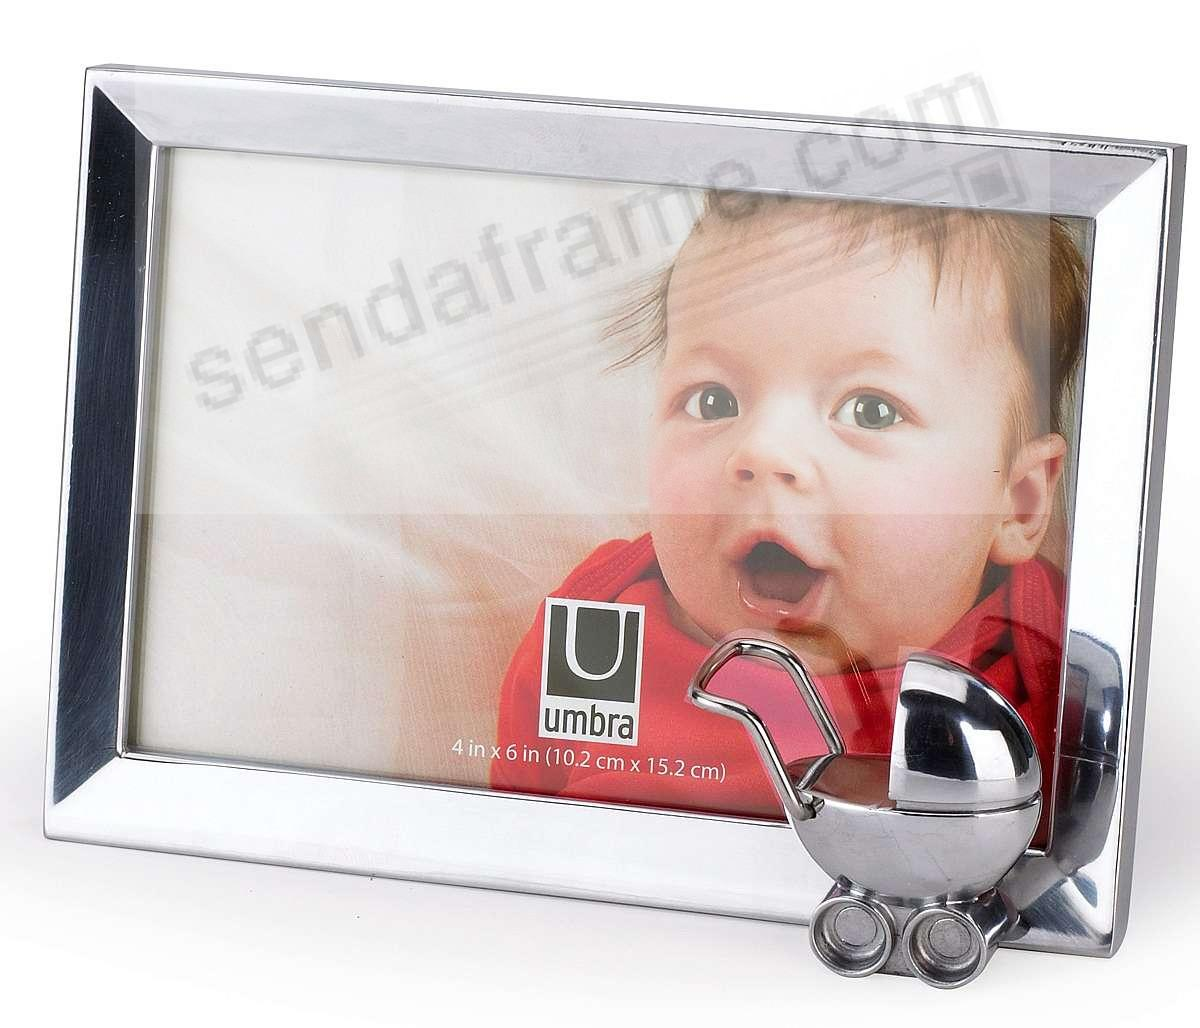 The original memoire baby frame for 4x6 prints by umbra picture the original memoire baby frame for 4x6 prints by umbra jeuxipadfo Images